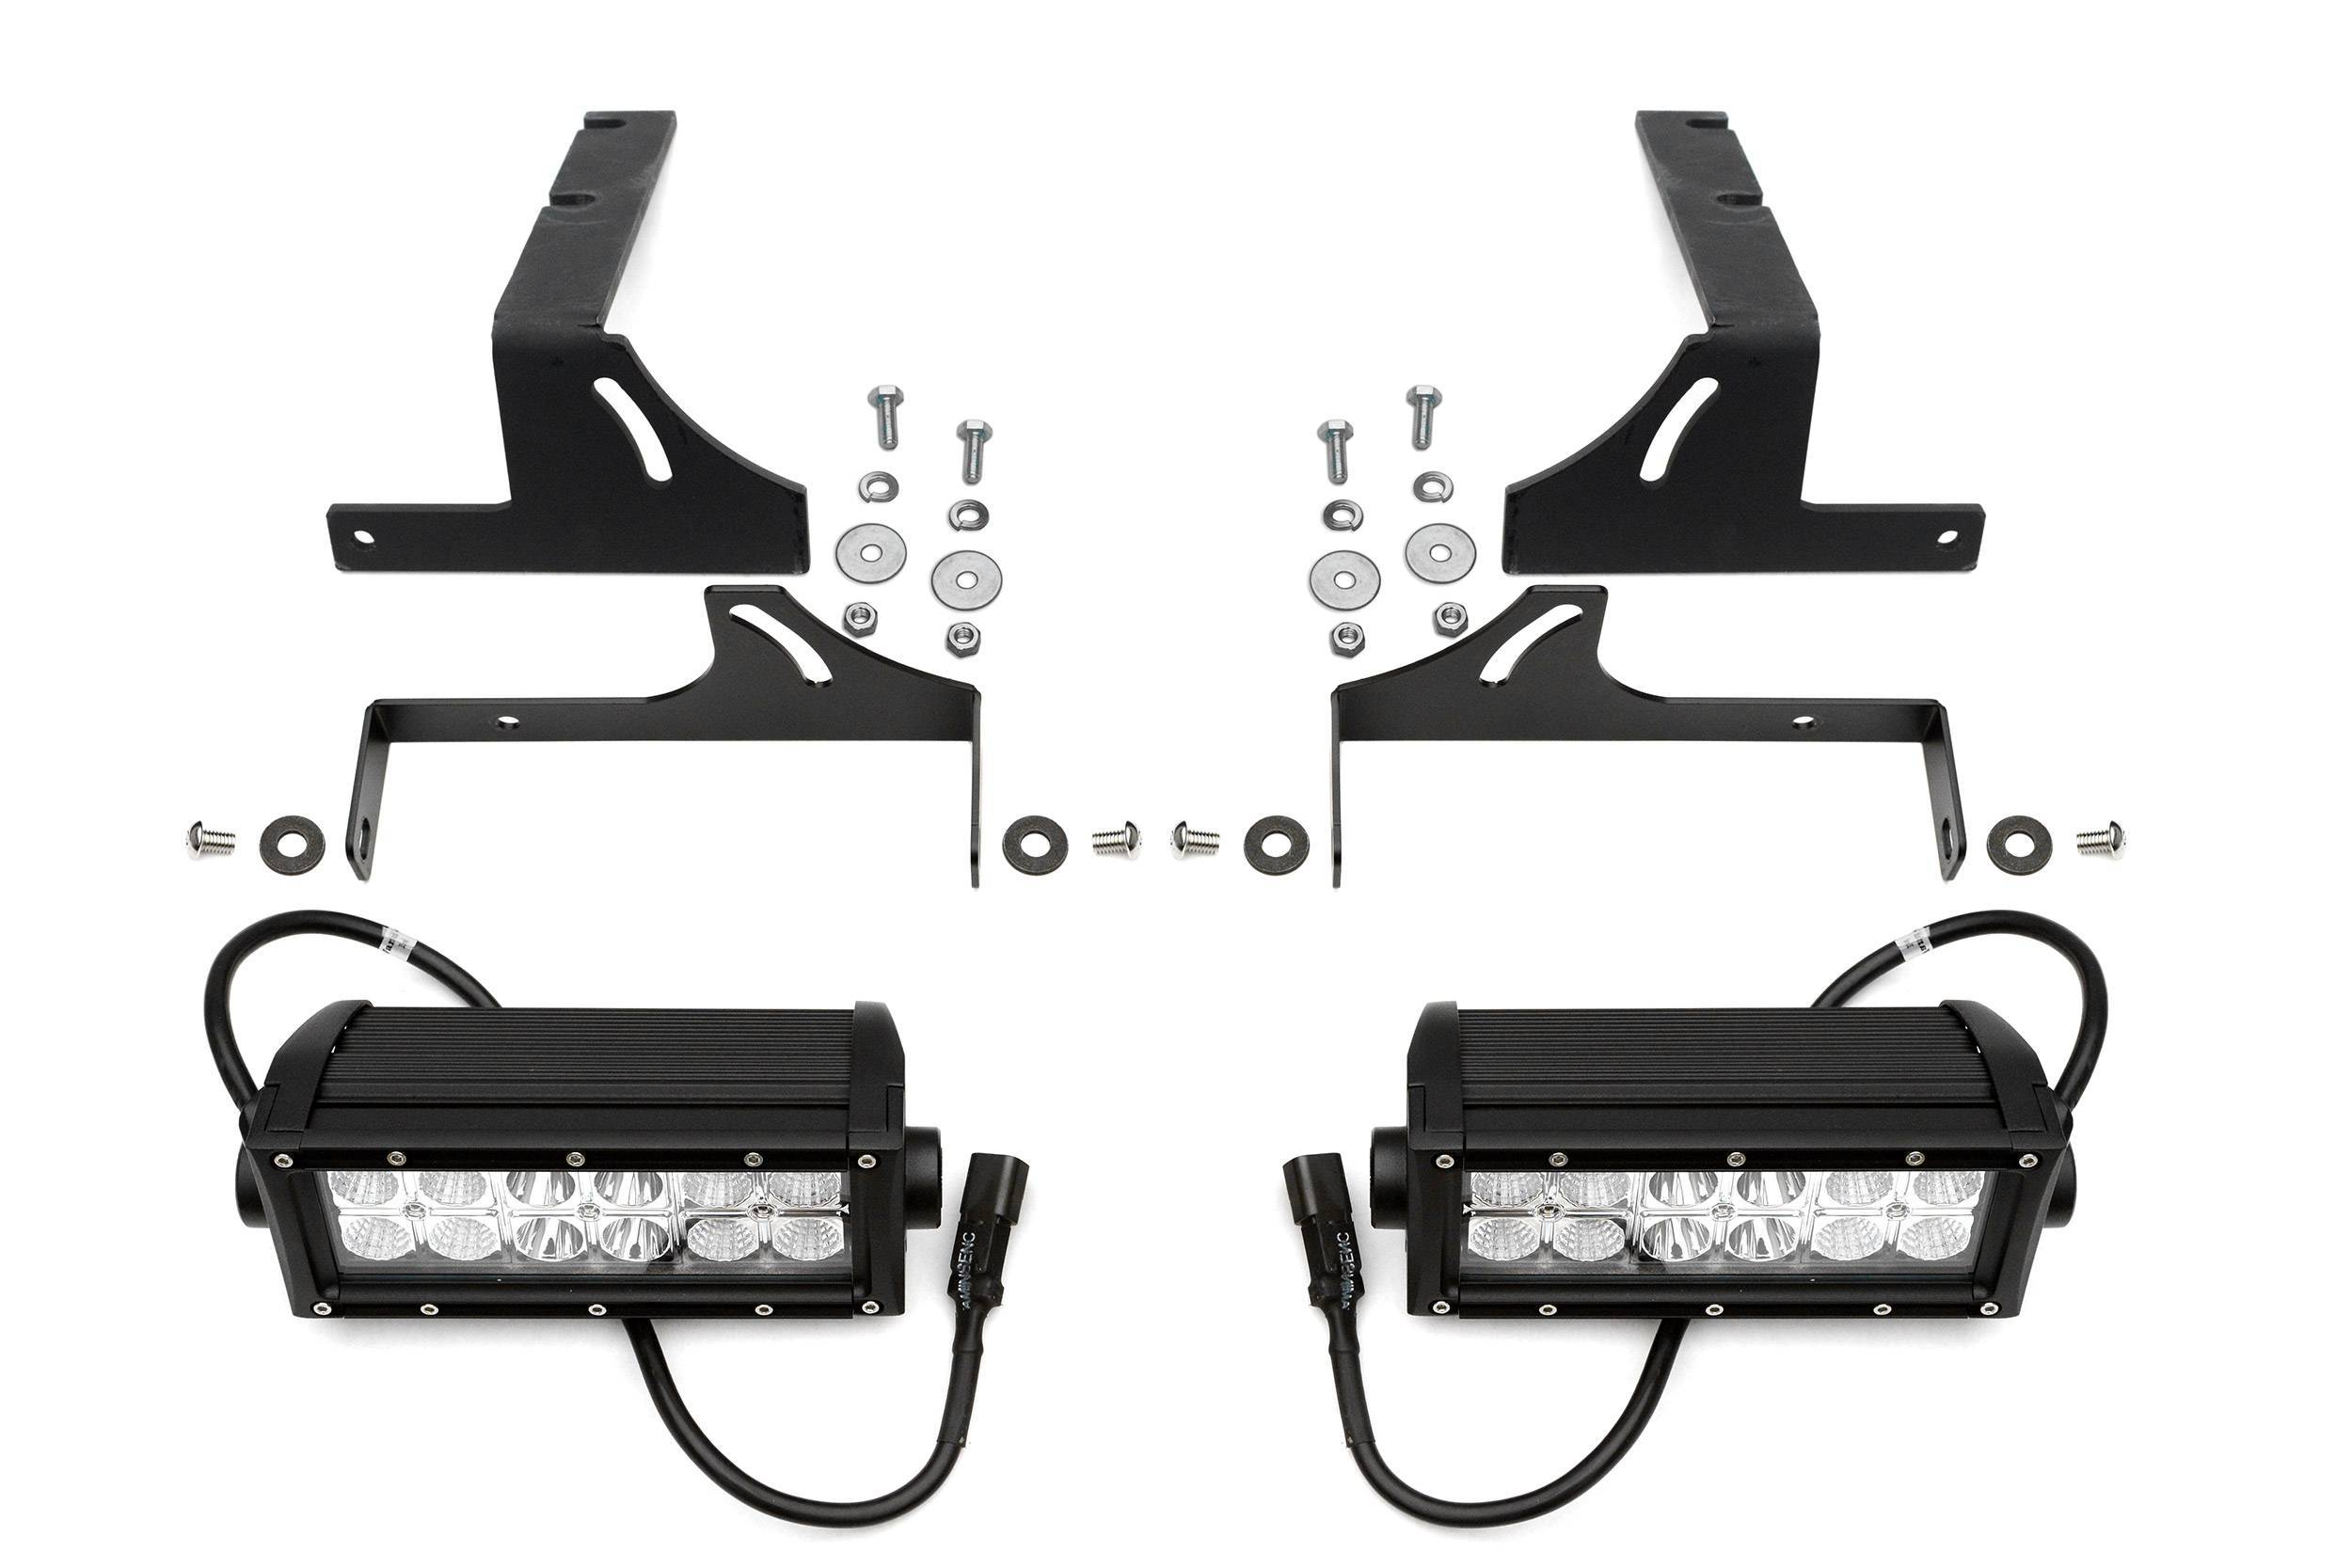 ZROADZ - 2014-2018 Silverado, Sierra 1500 Rear Bumper LED Kit with (2) 6 Inch LED Straight Double Row Light Bars - PN #Z382082-KIT